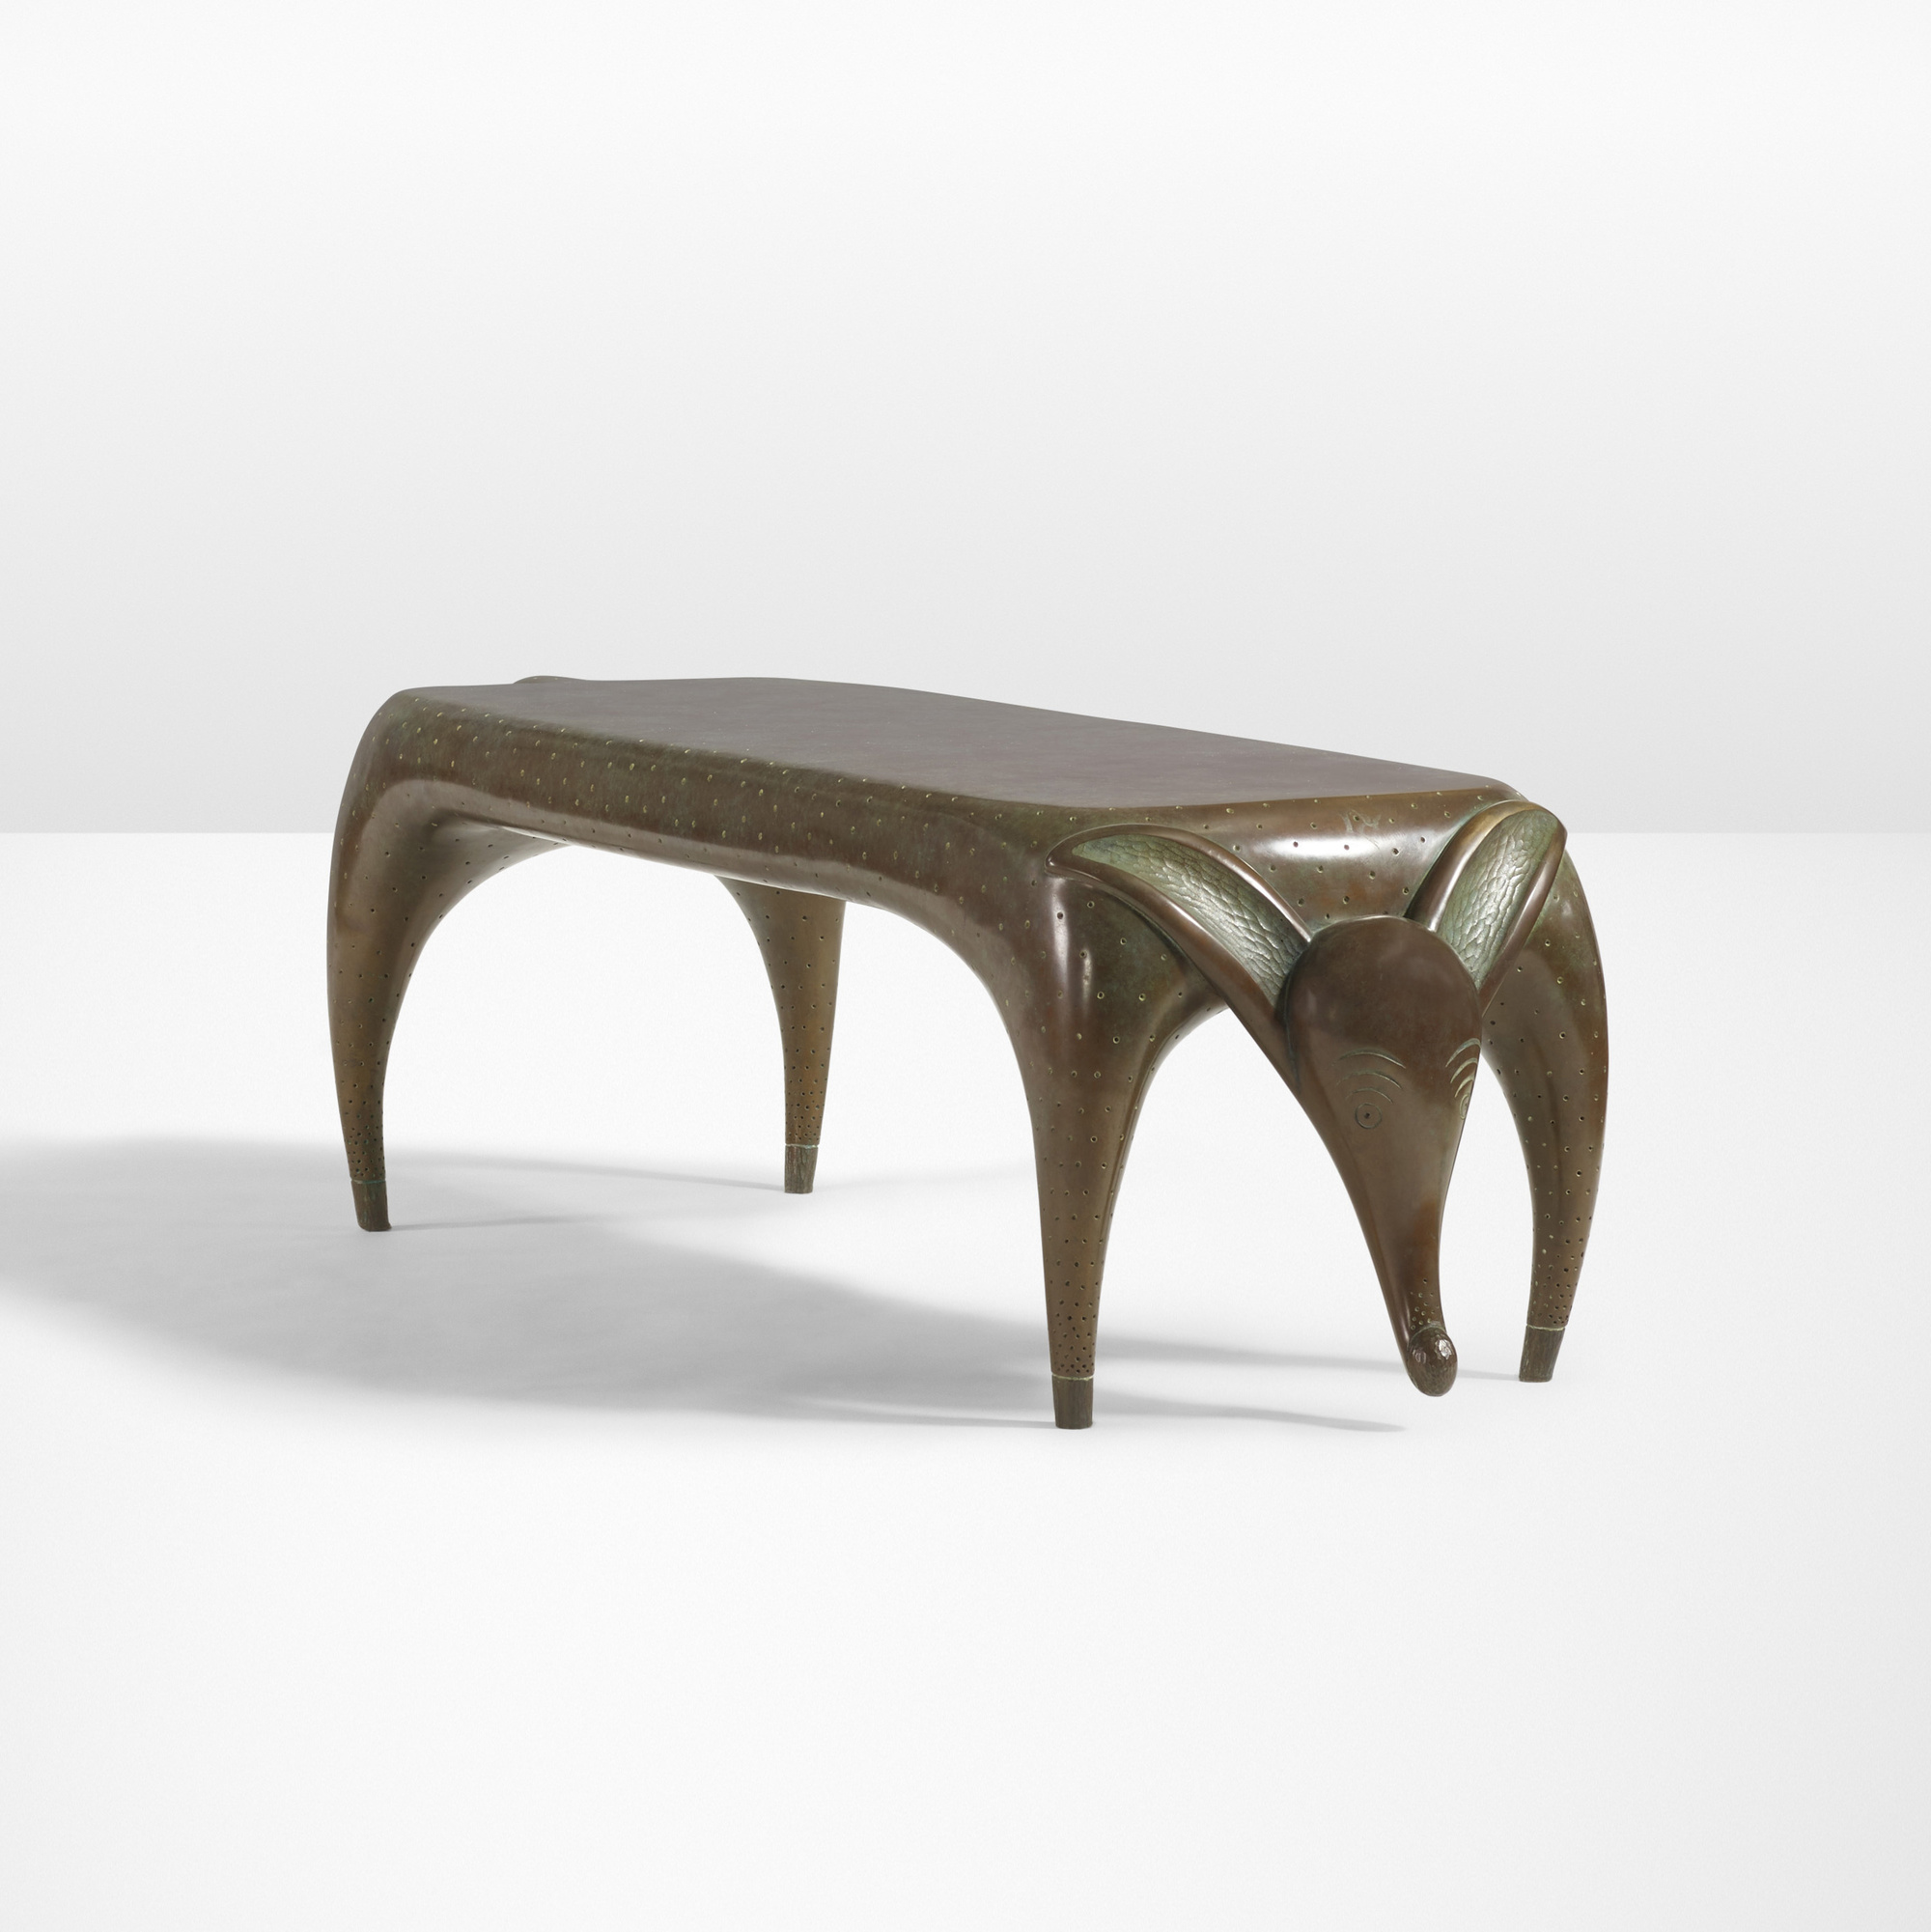 21: Judy Kensley McKie / Timid Dog bench (1 of 4)